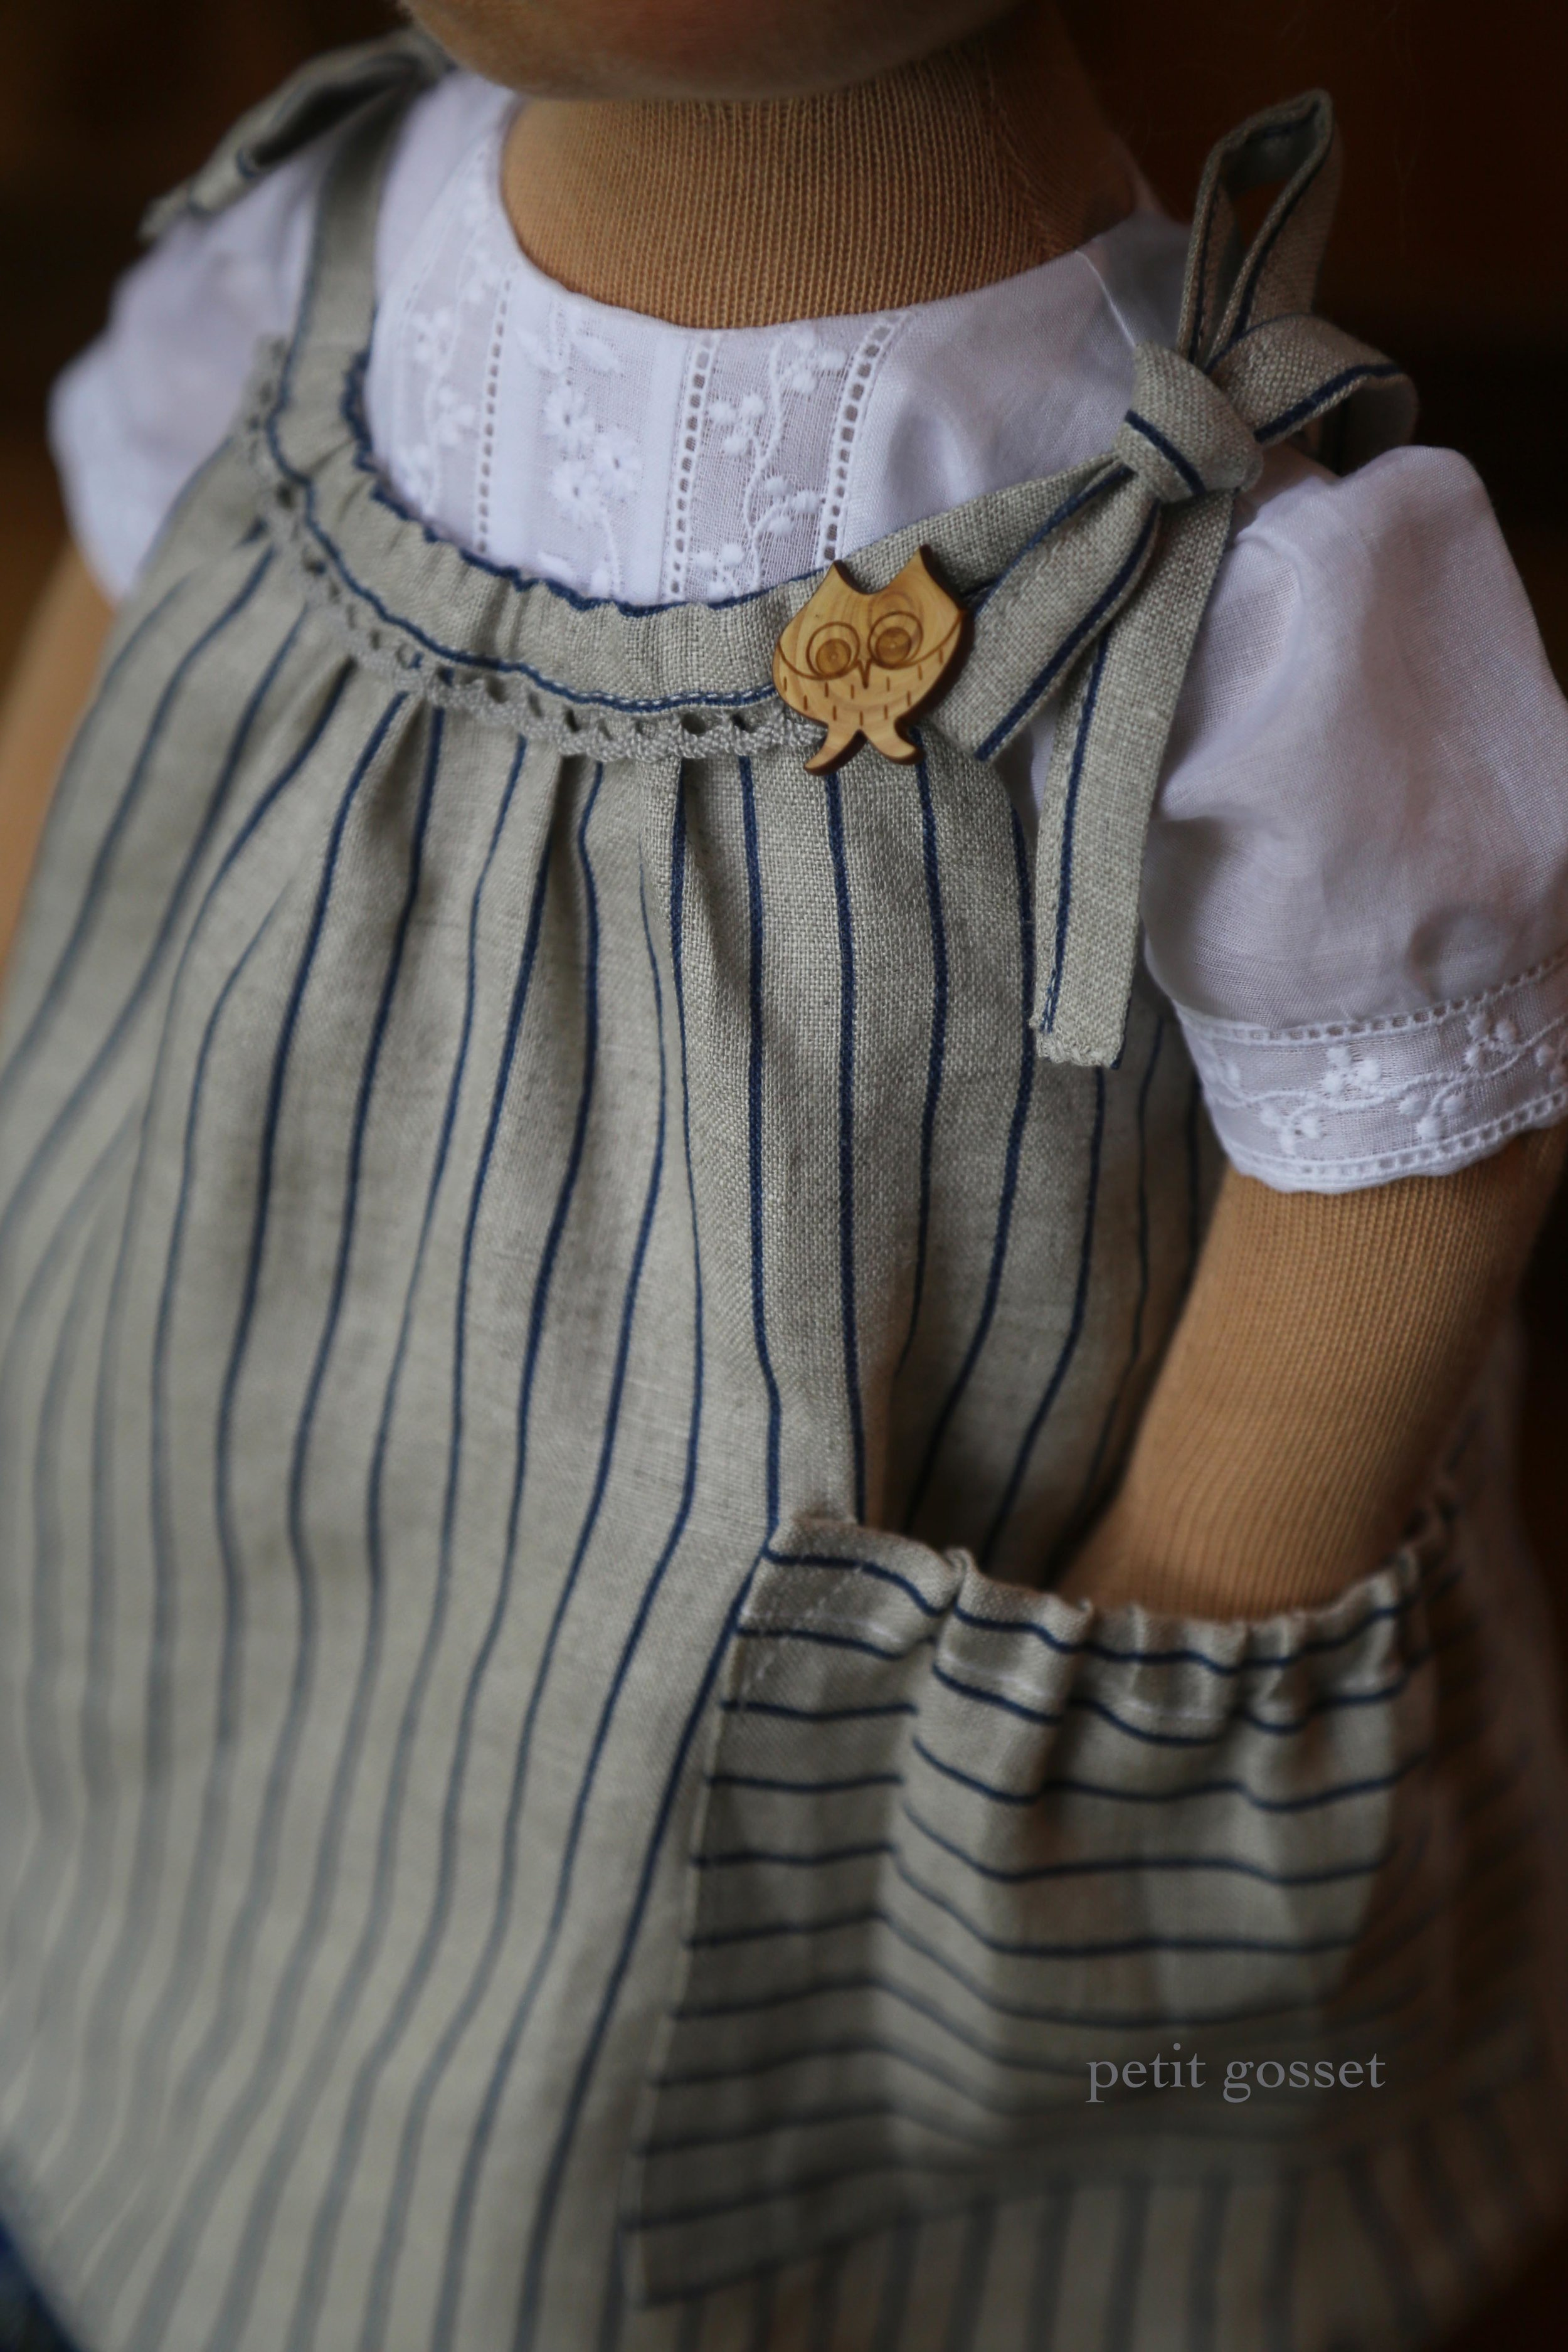 A linen pinafore with a pocket